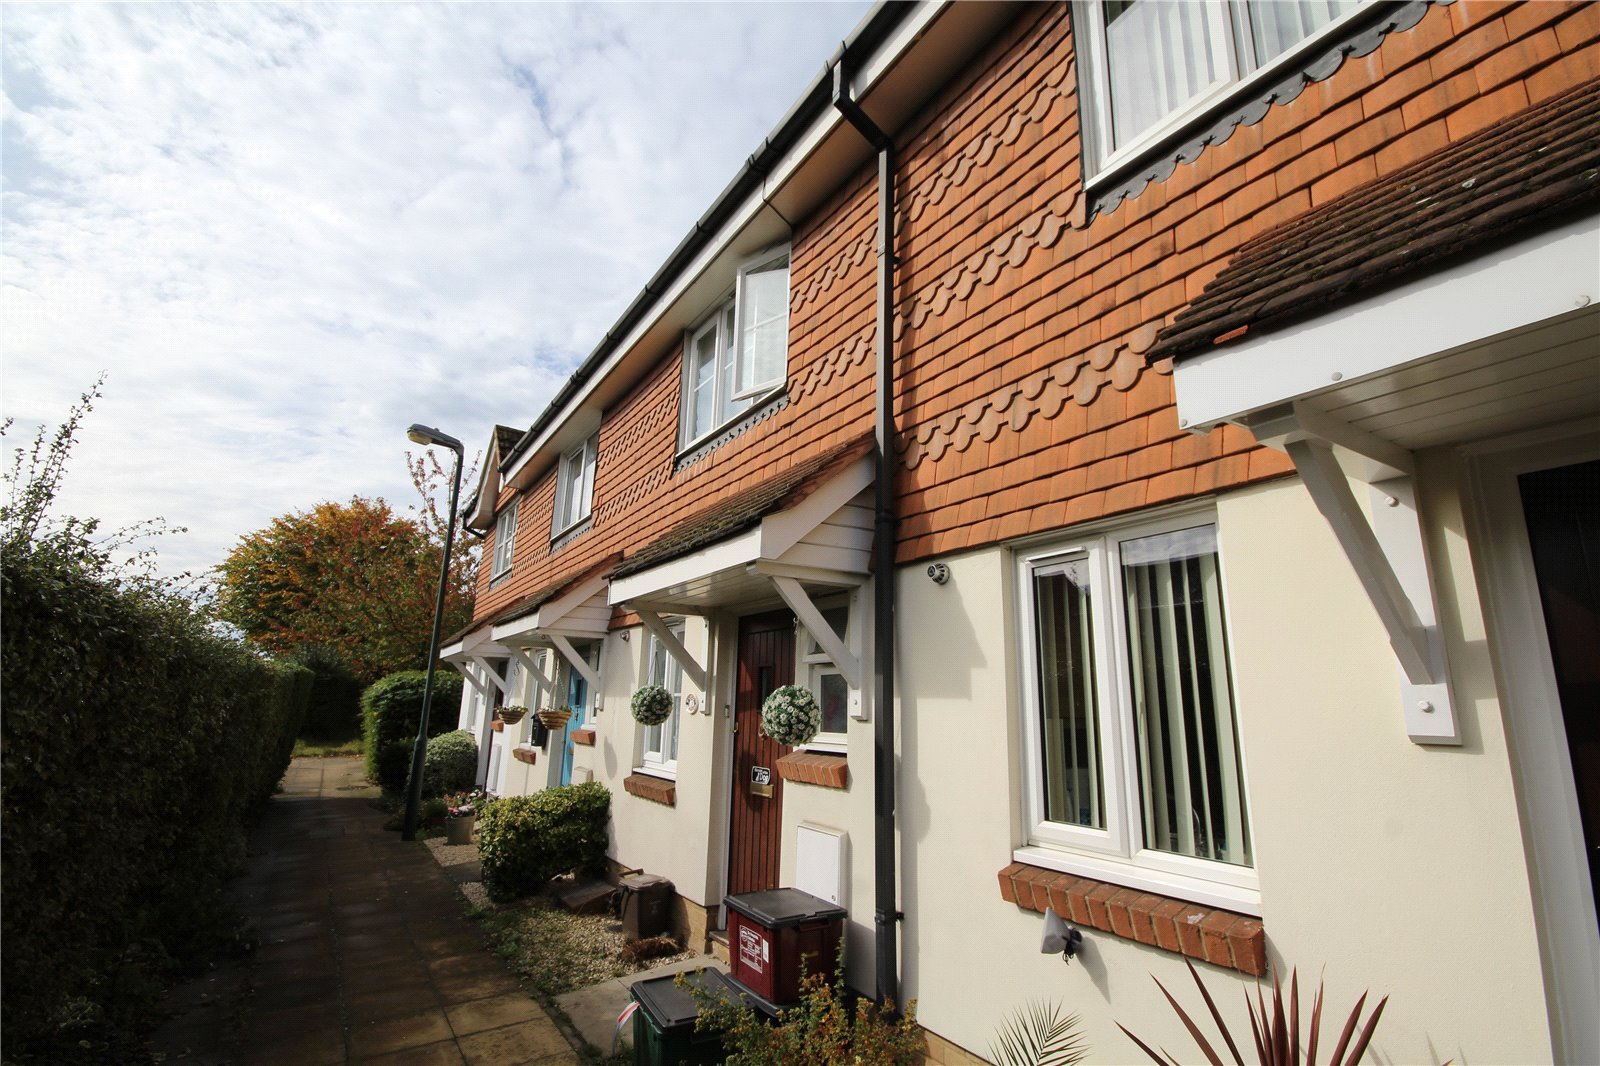 Hawthorn Cottages, Hook Lane, South Welling, Kent, DA16